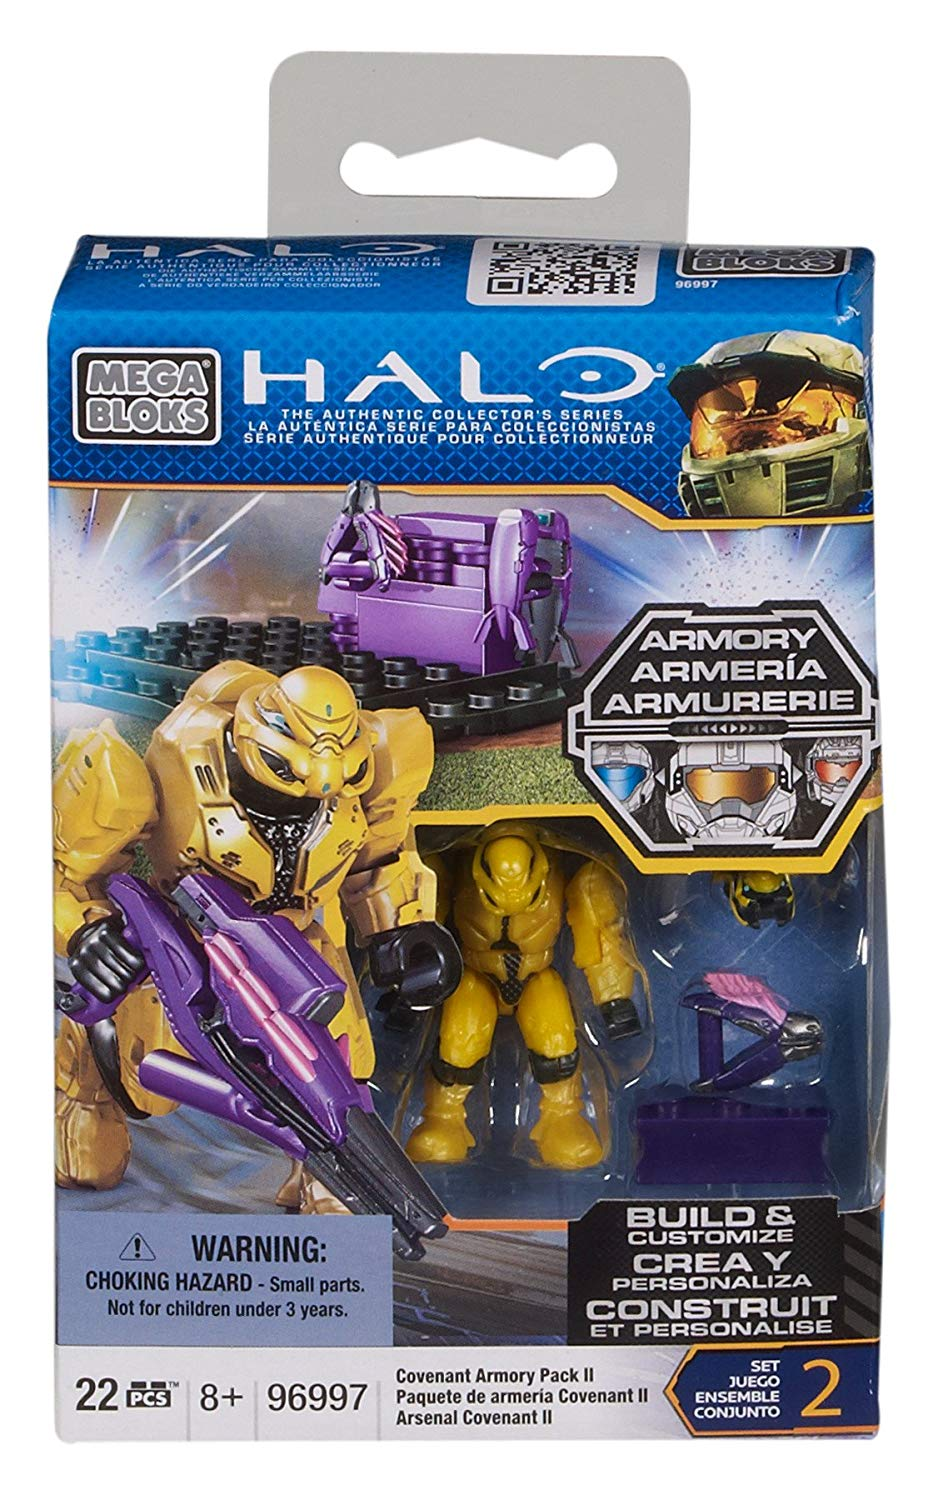 Halo Mega Bloks Covenant Armory Pack II officially licensed Halo Mega Bloks product at B.A. Toys.